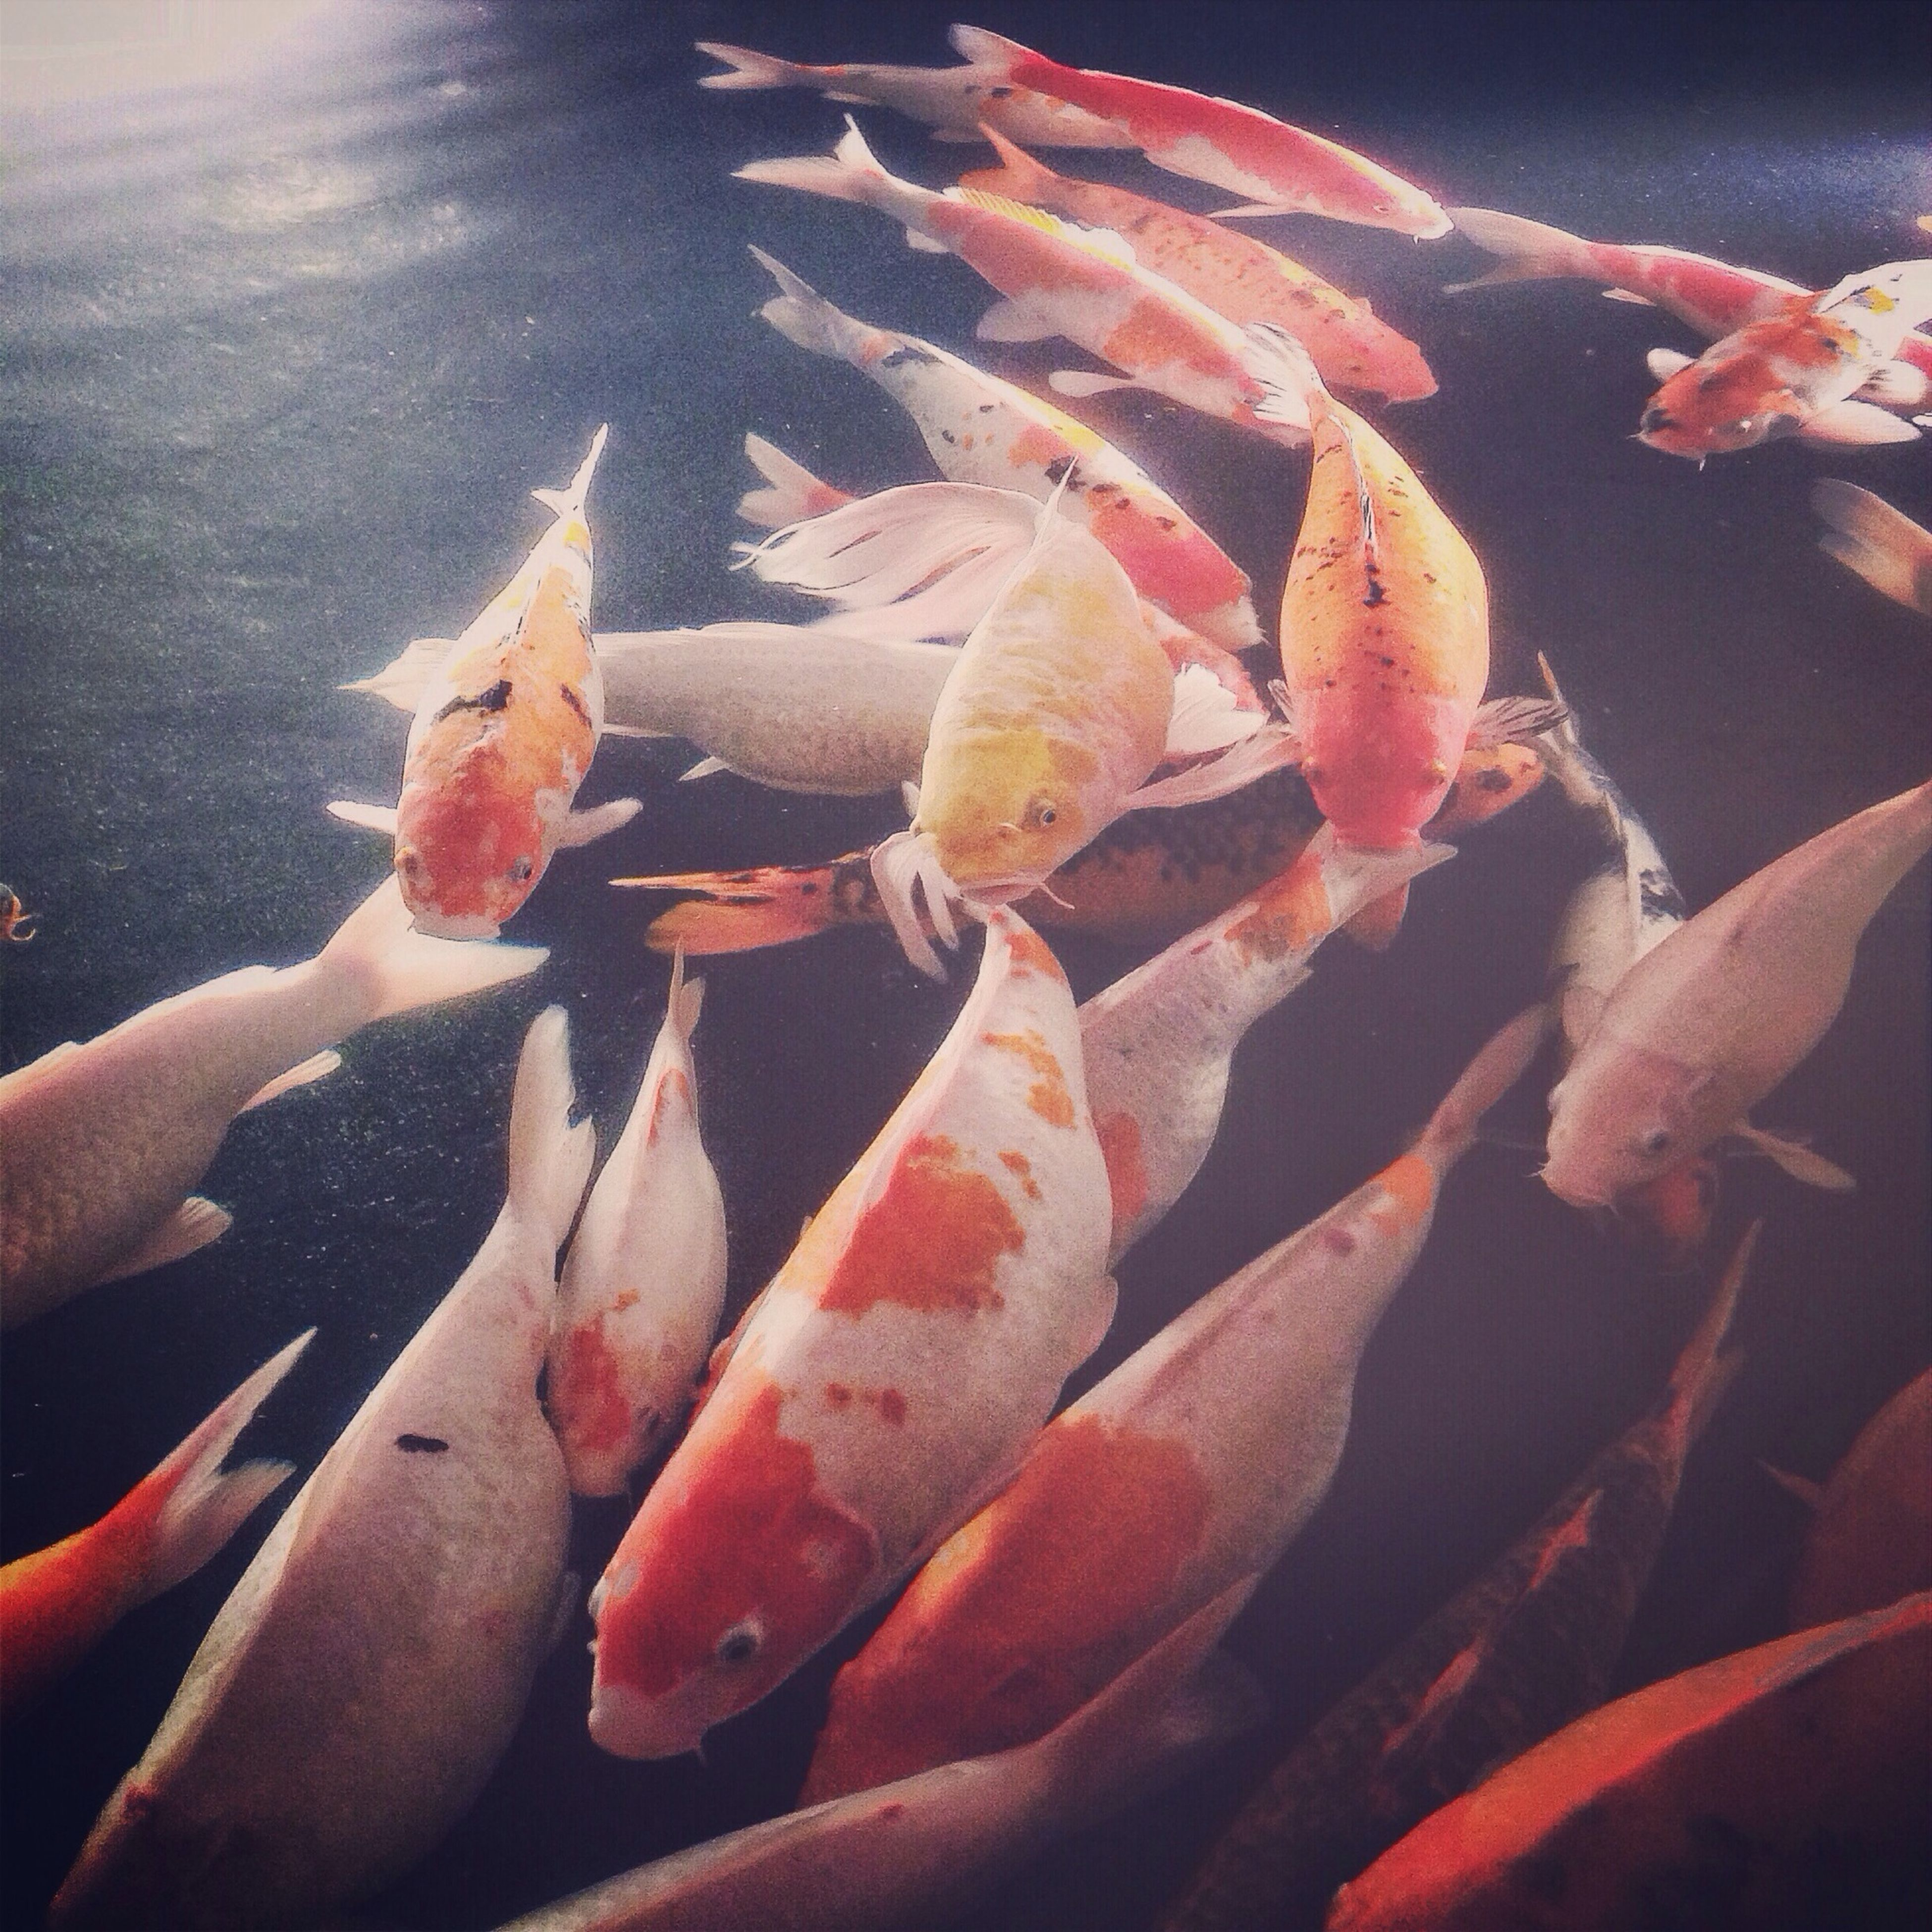 fish, animal themes, water, animals in the wild, wildlife, swimming, sea life, medium group of animals, high angle view, seafood, underwater, close-up, nature, pond, koi carp, day, outdoors, dead animal